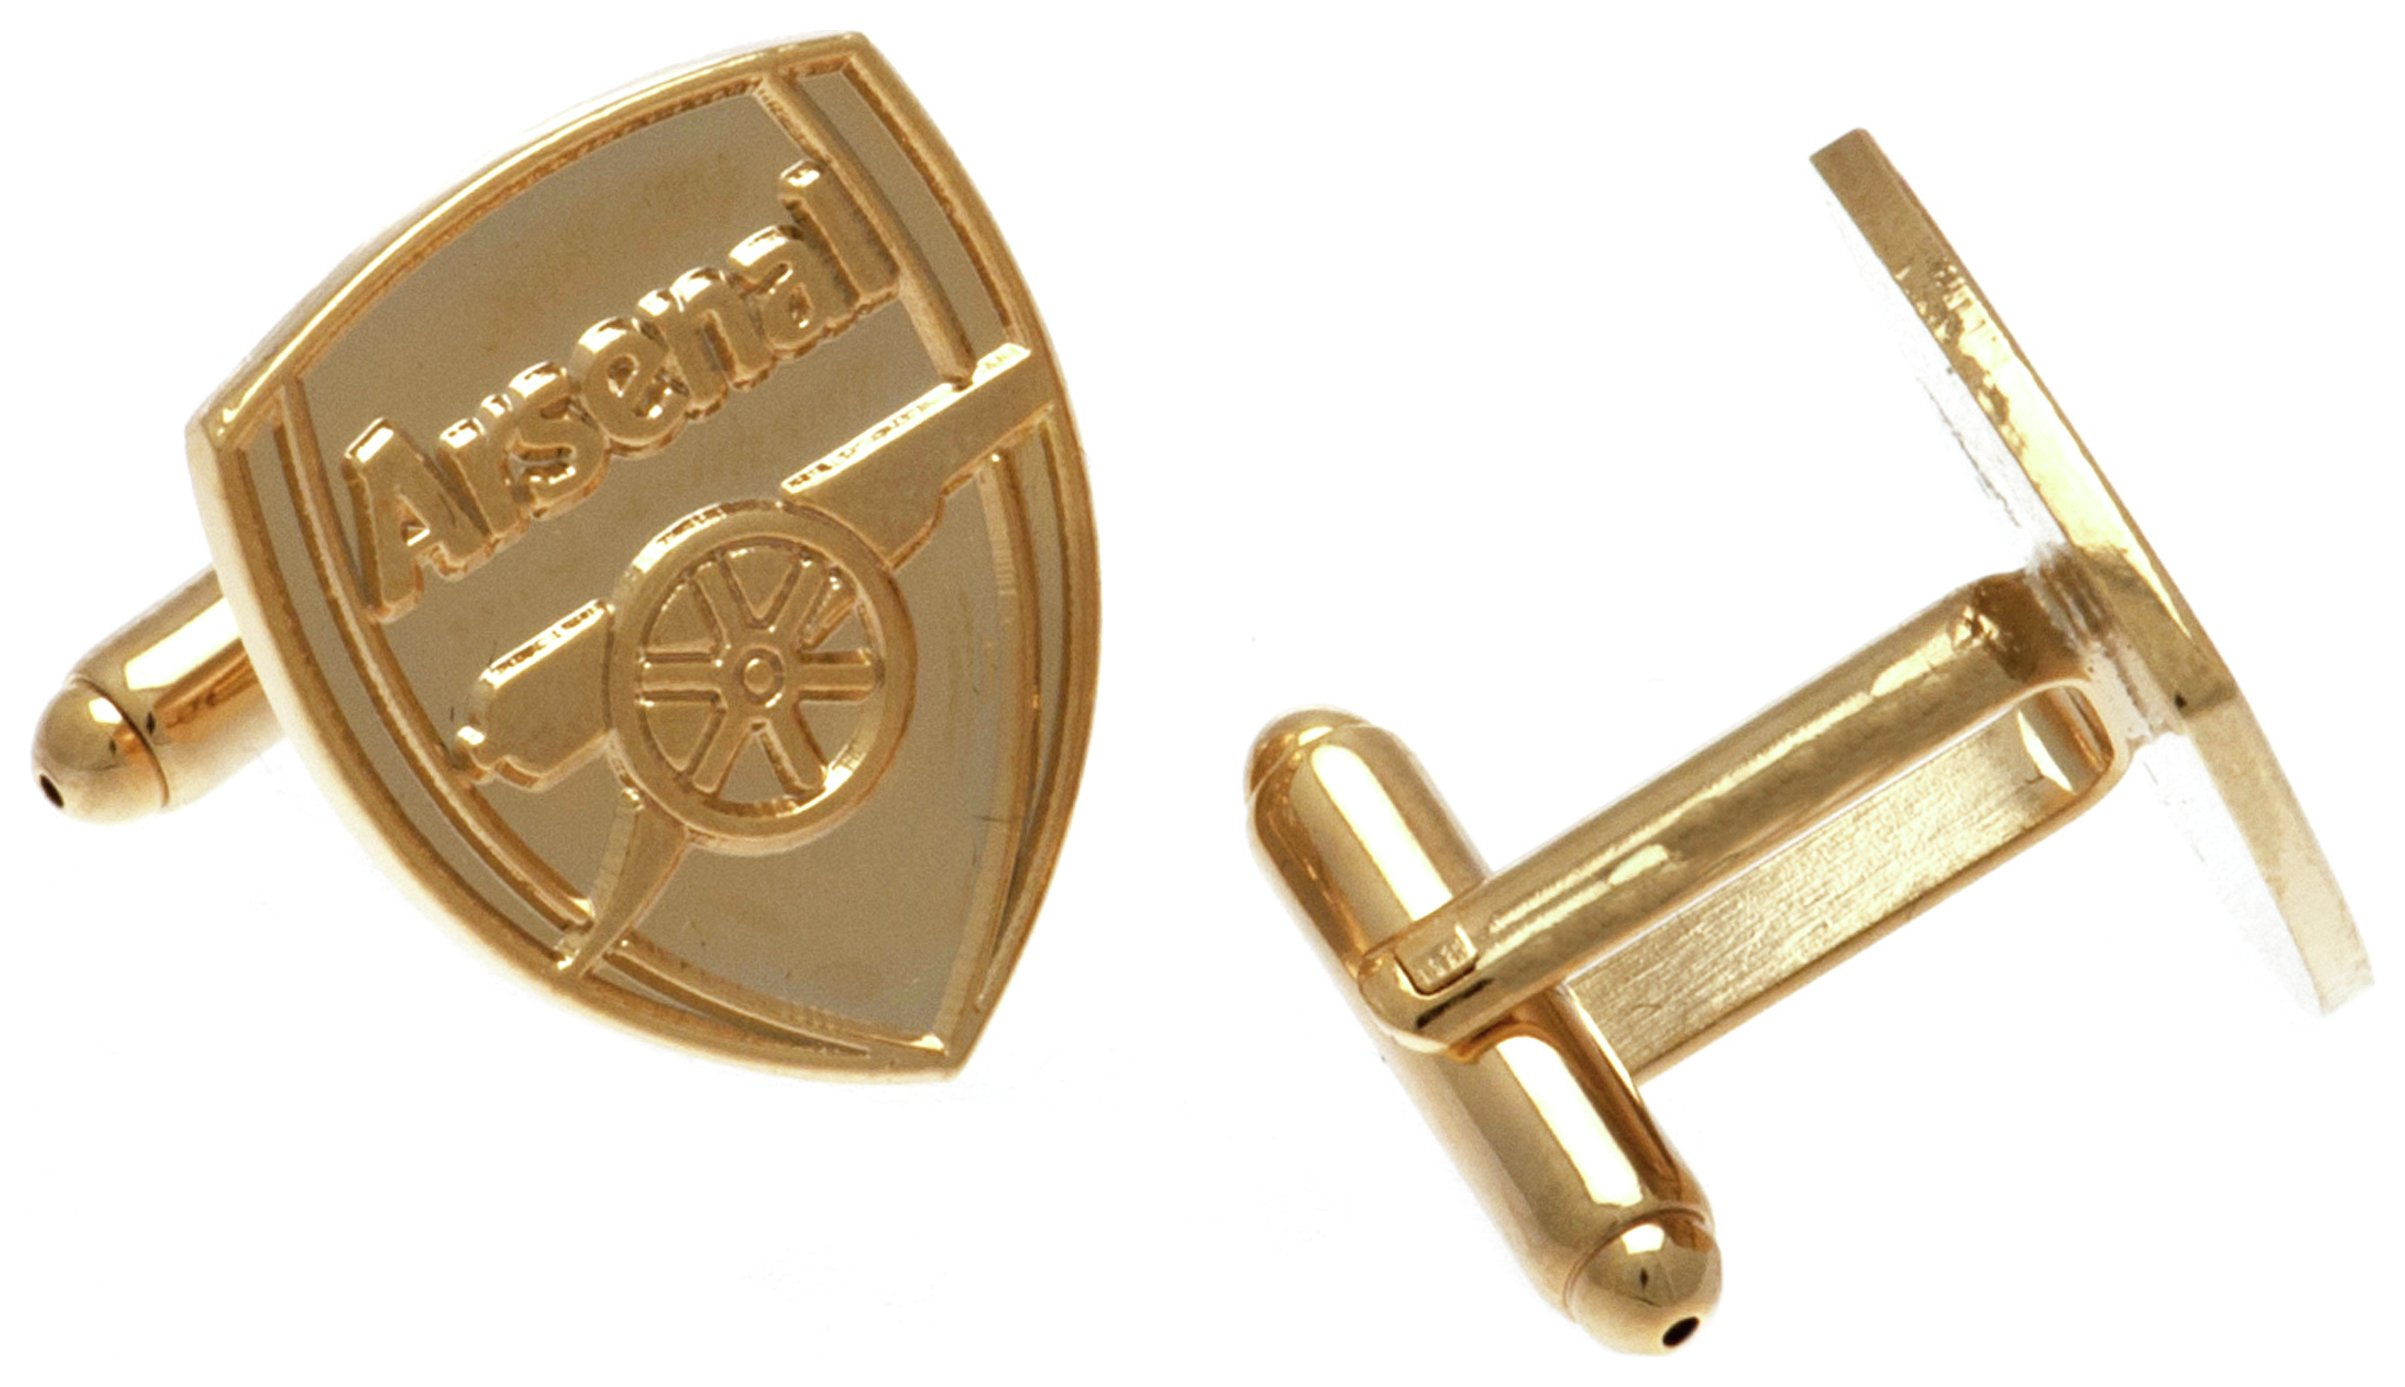 Image of Gold Plated Arsenal Cufflinks.